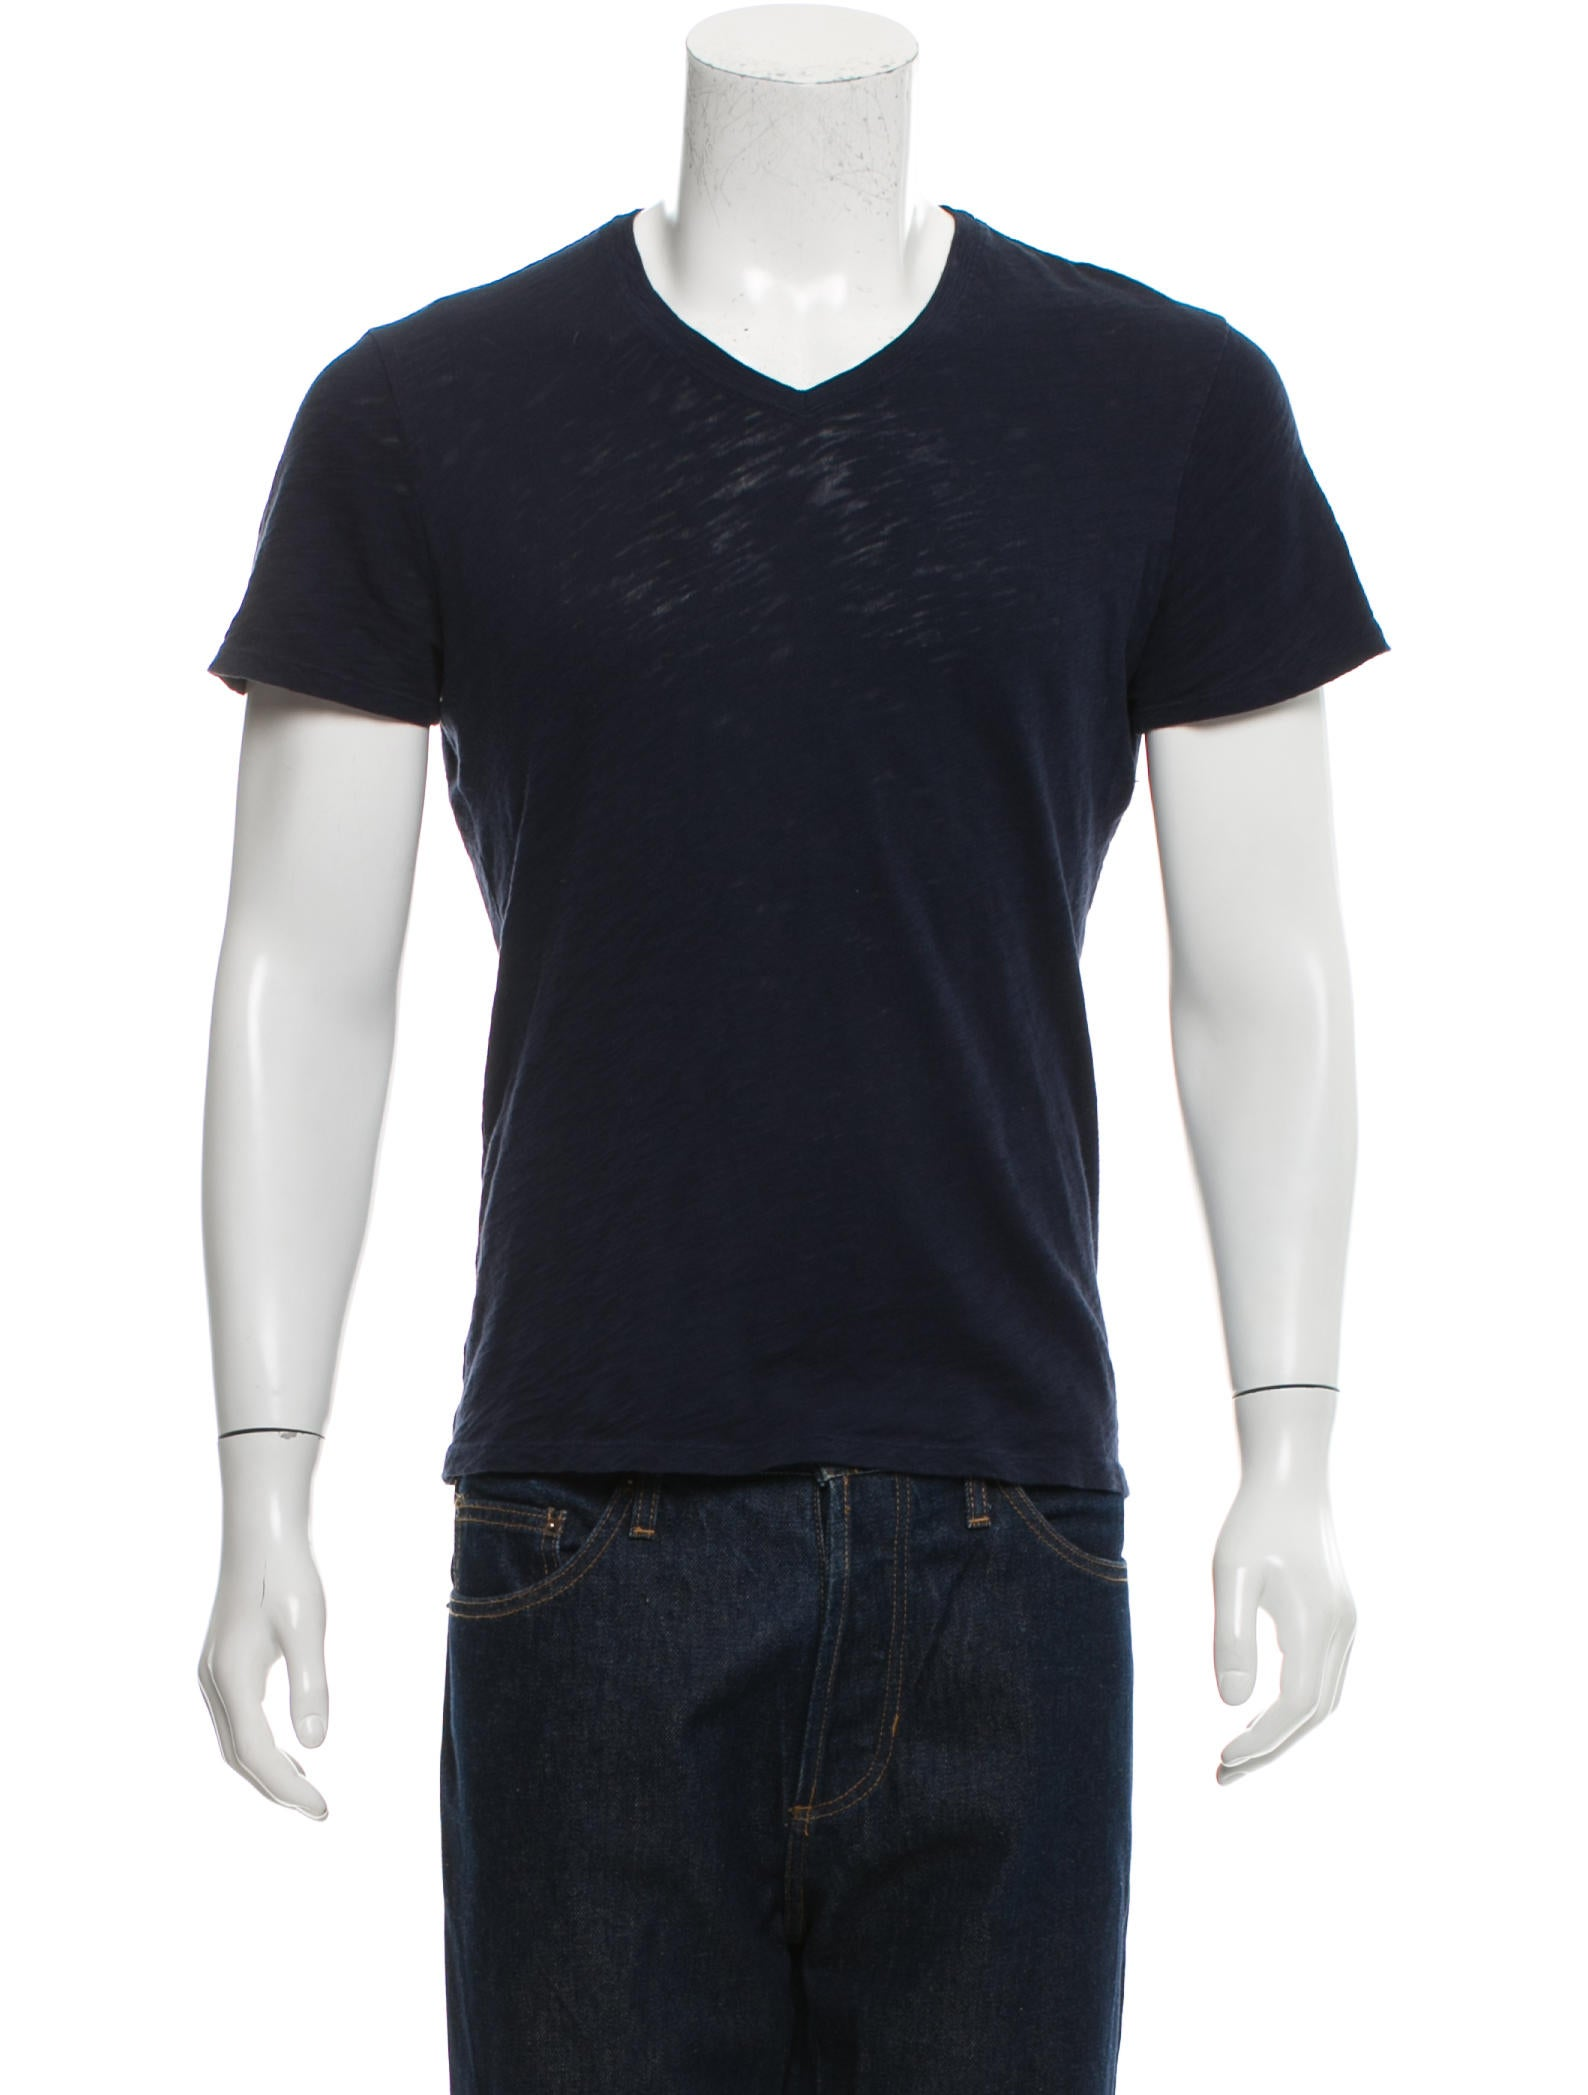 Atm v neck woven t shirt clothing watm220214 the Woven t shirt tags